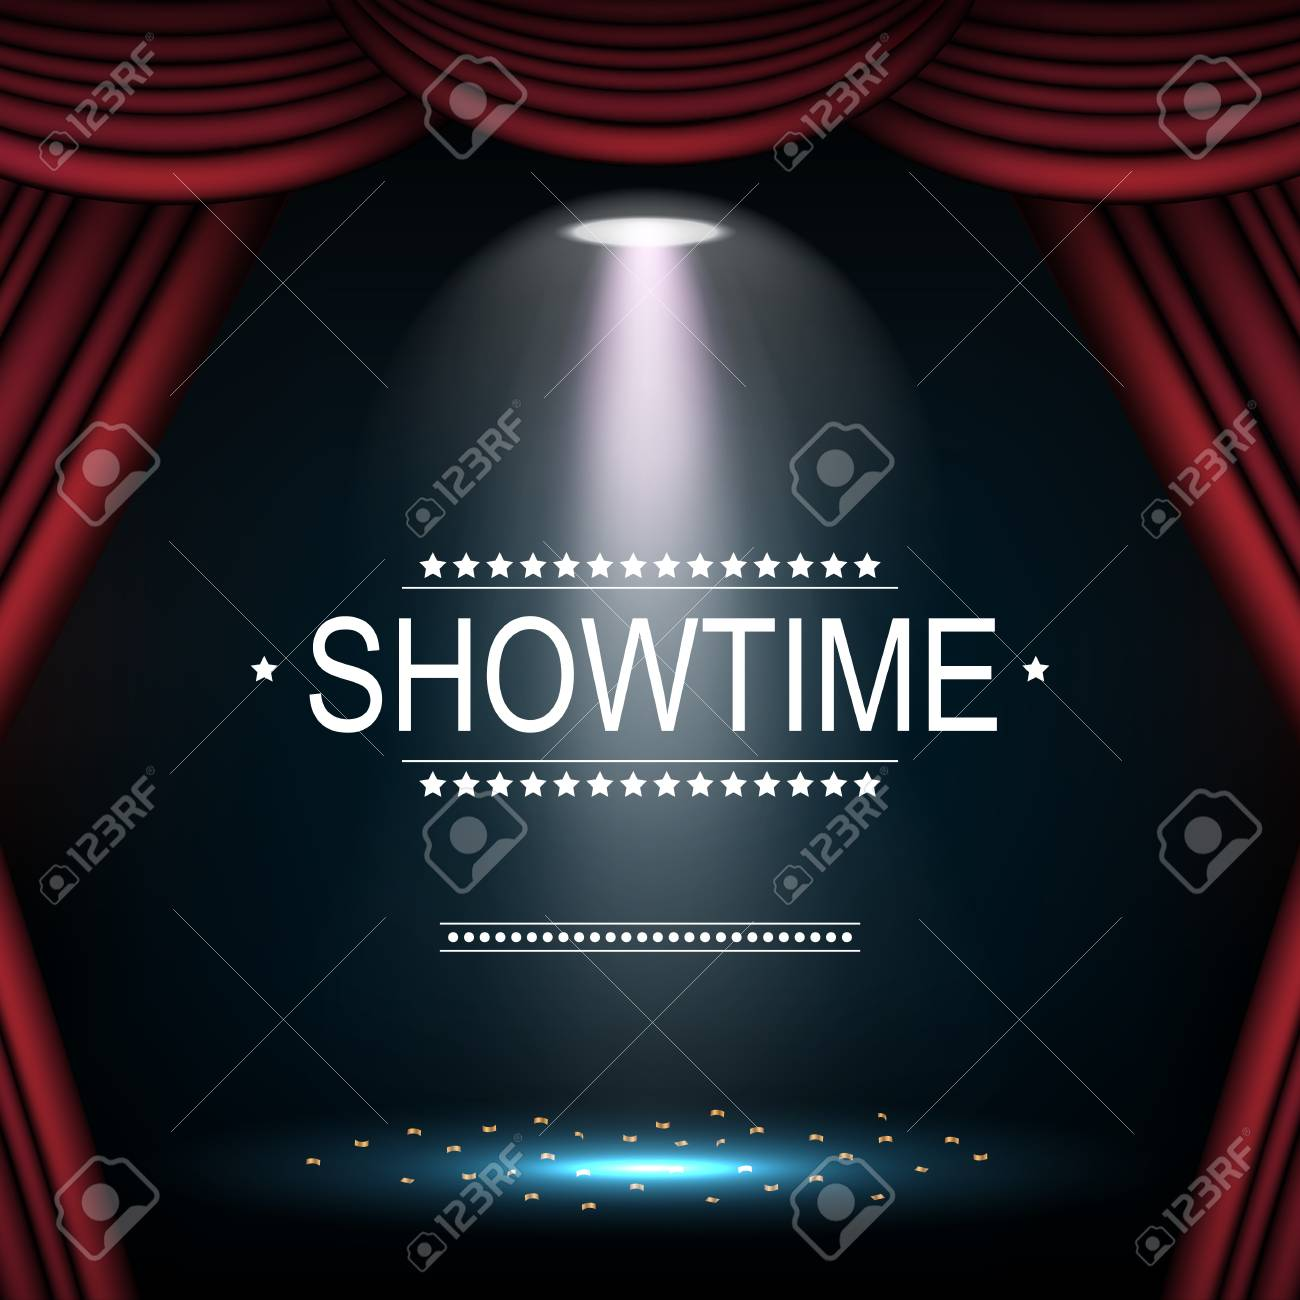 Showtime Background With Curtain Illuminated By Spotlights Stock 1300x1300